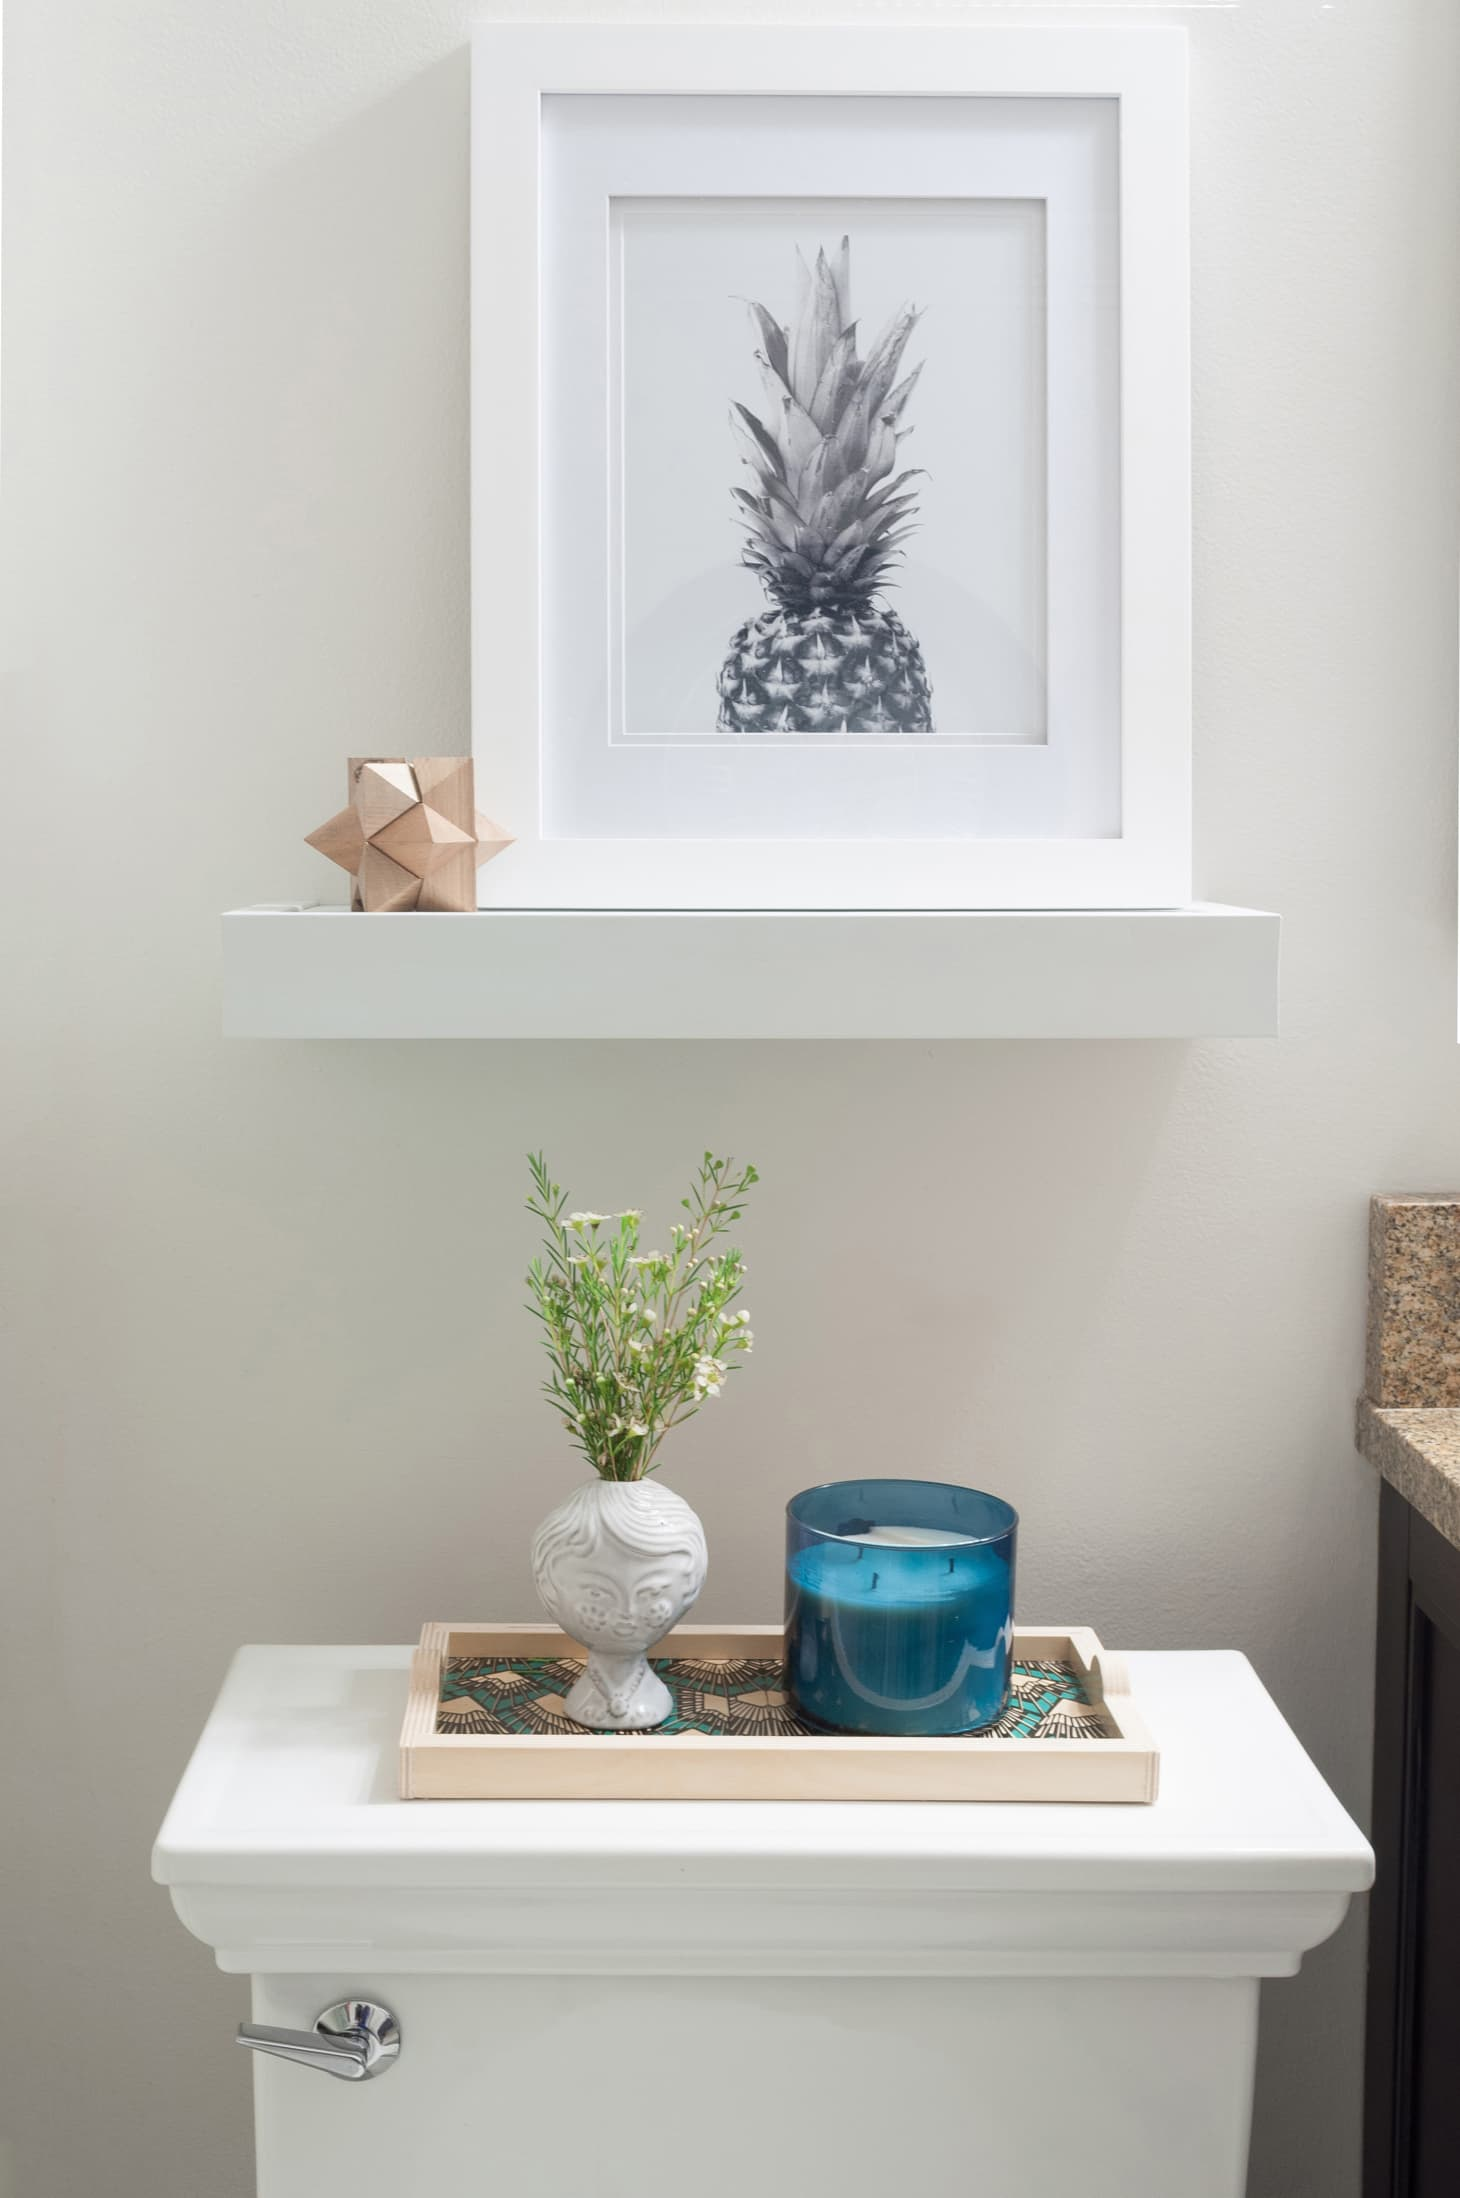 5 Ways to Build DIY Floating Shelves | Apartment Therapy